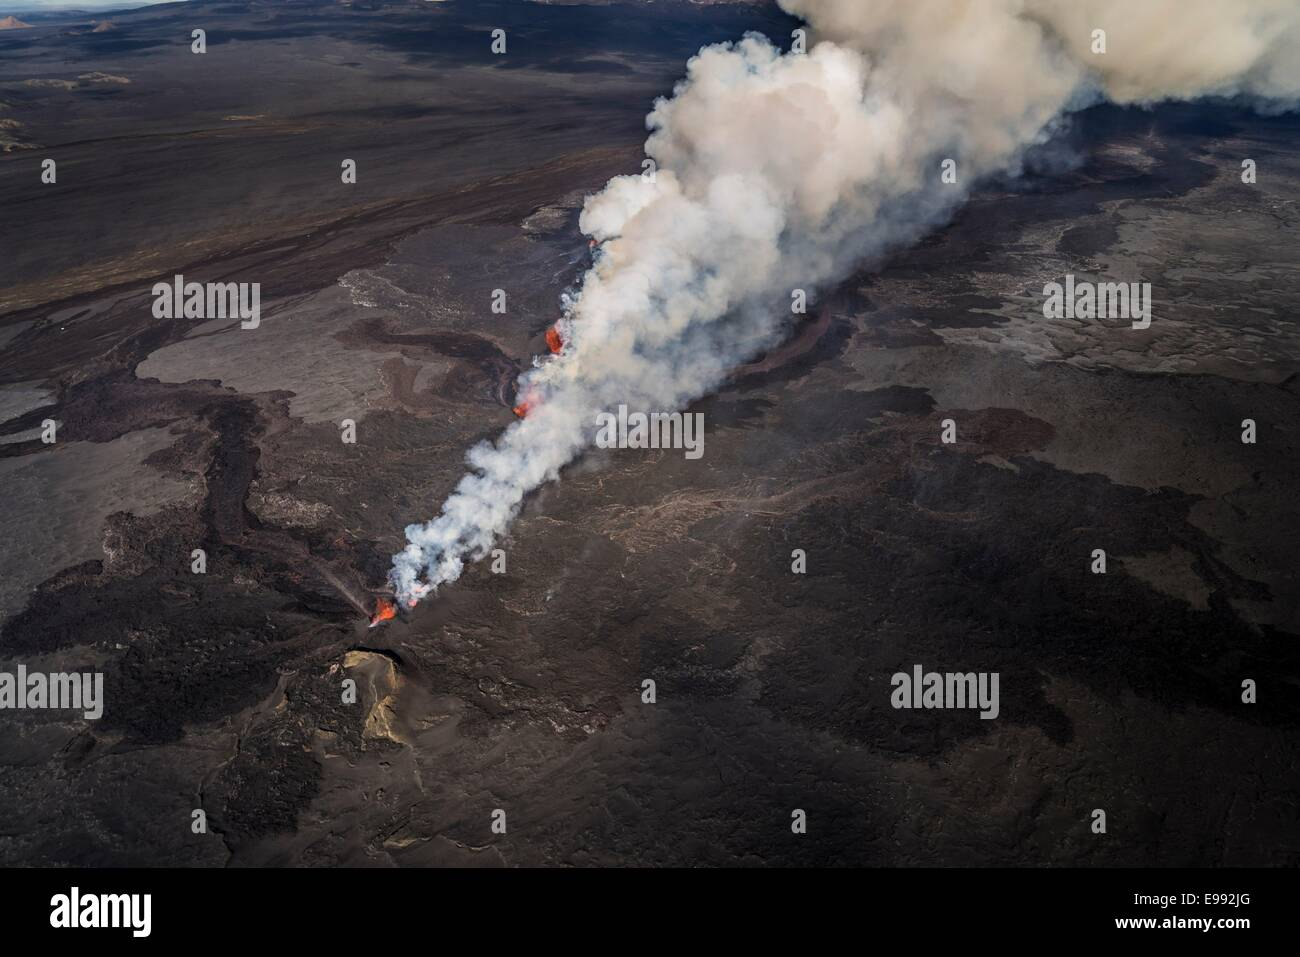 Lava and plumes from the Holuhraun Fissure by the Bardarbunga Volcano, Iceland. - Stock Image